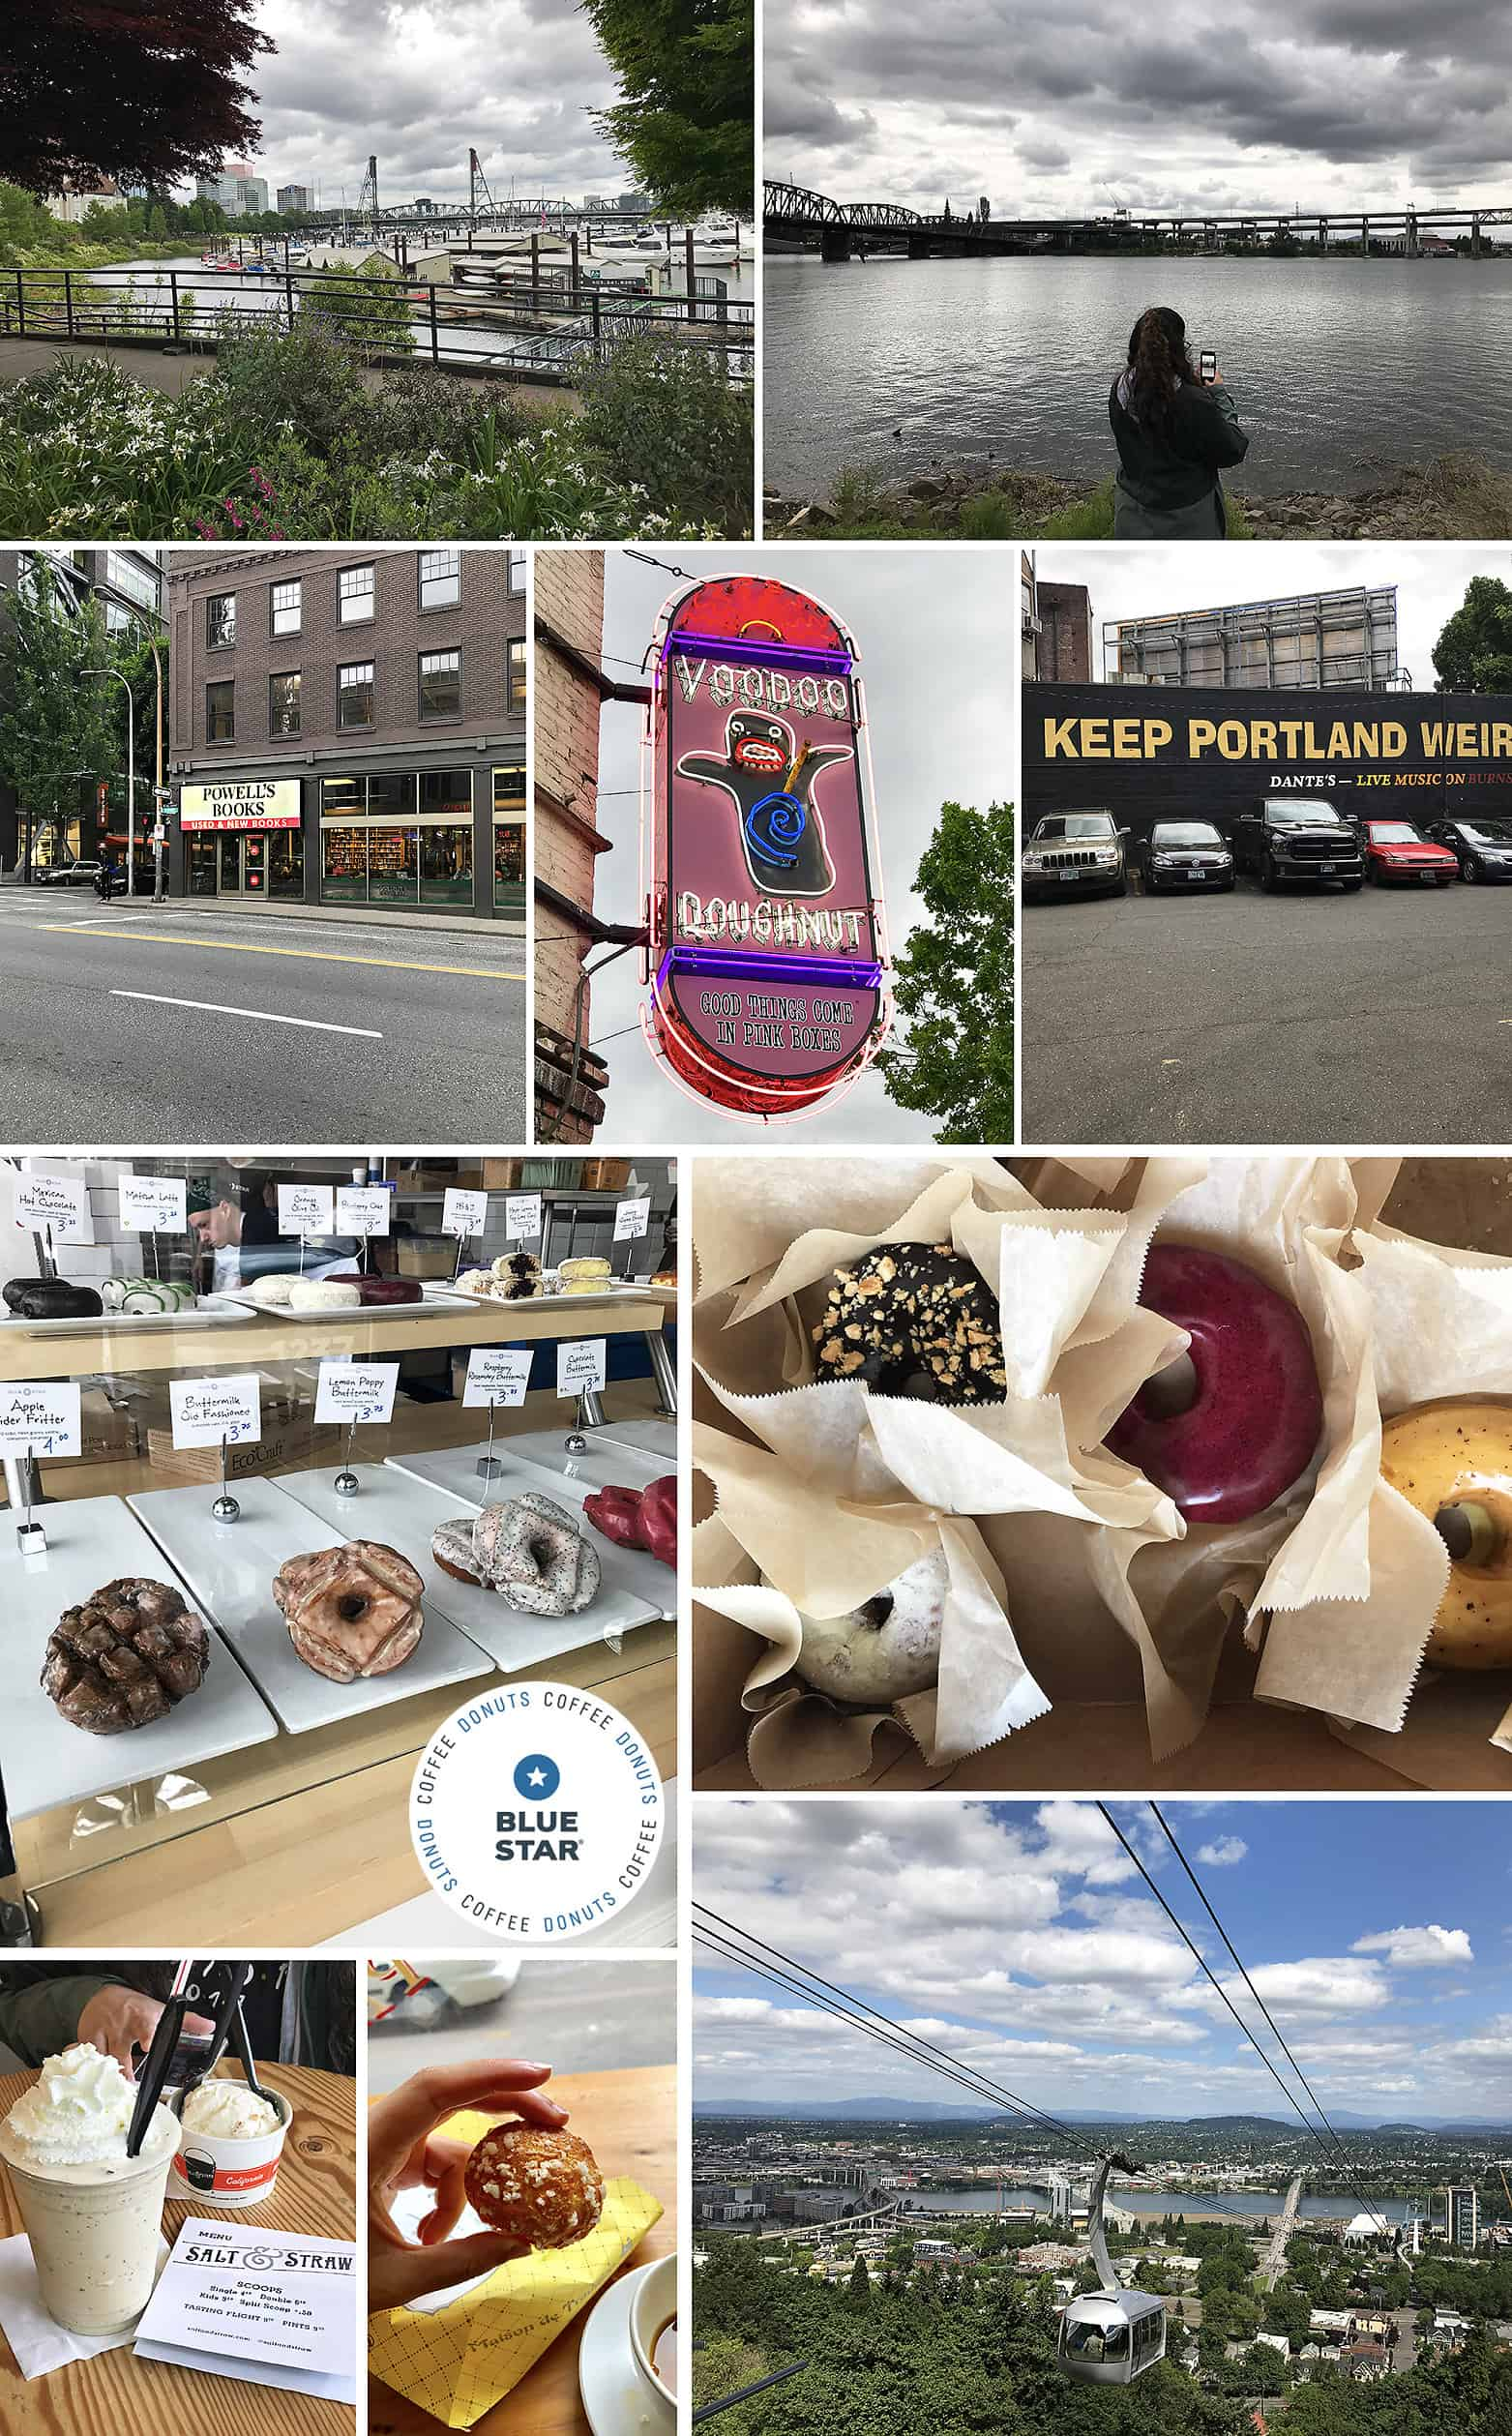 Around Portland Waterfront and Blue Star Donuts